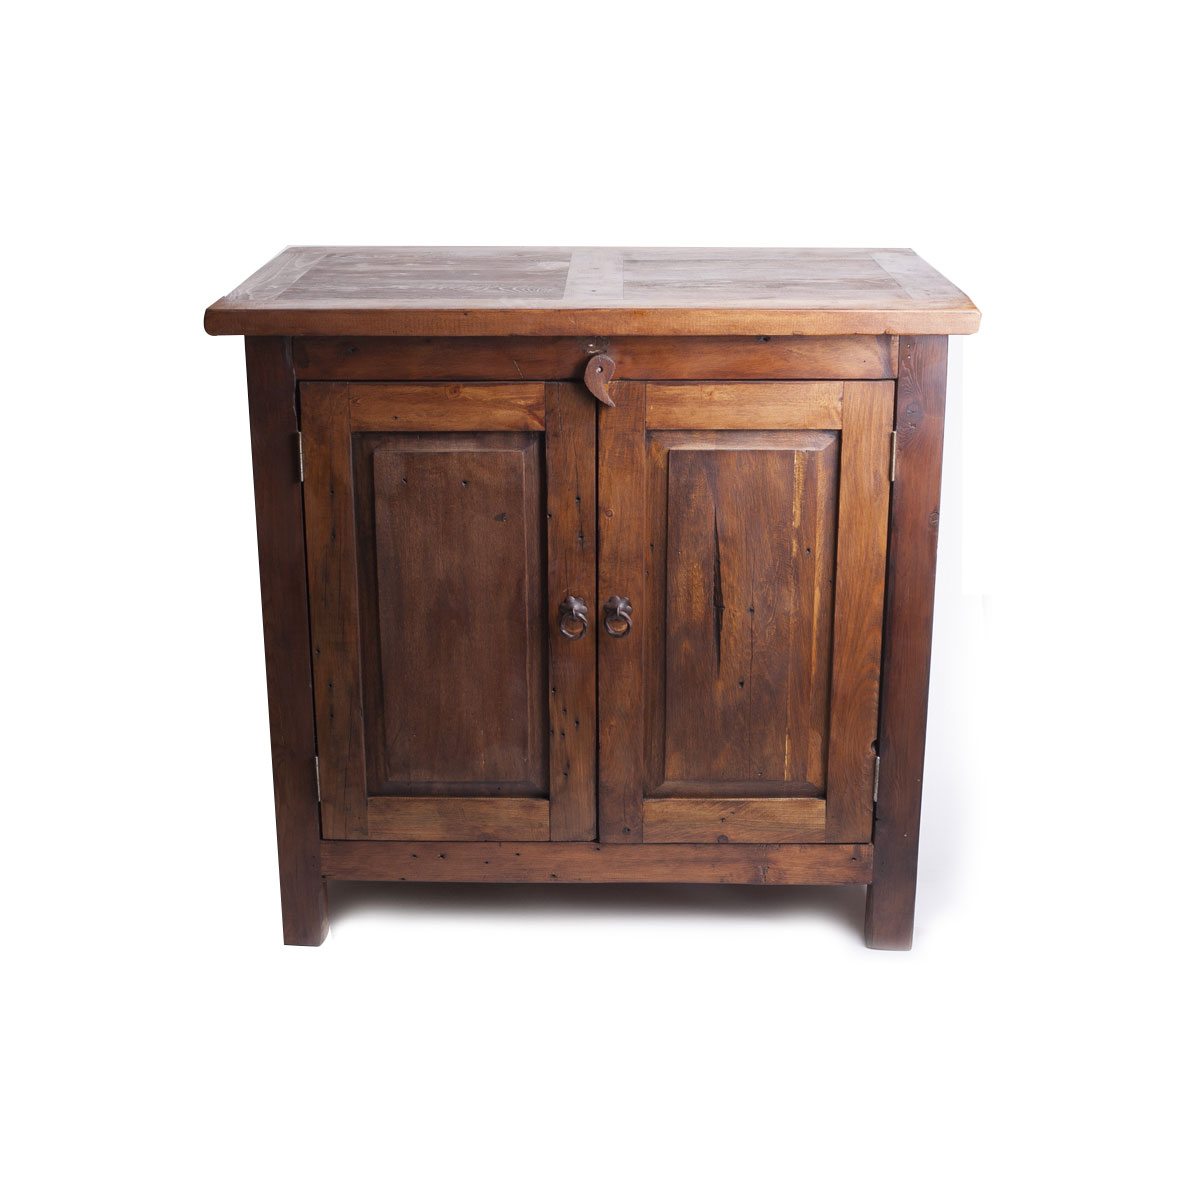 Reclaimed barn wood bathroom vanity 28 images for Reclaimed wood online